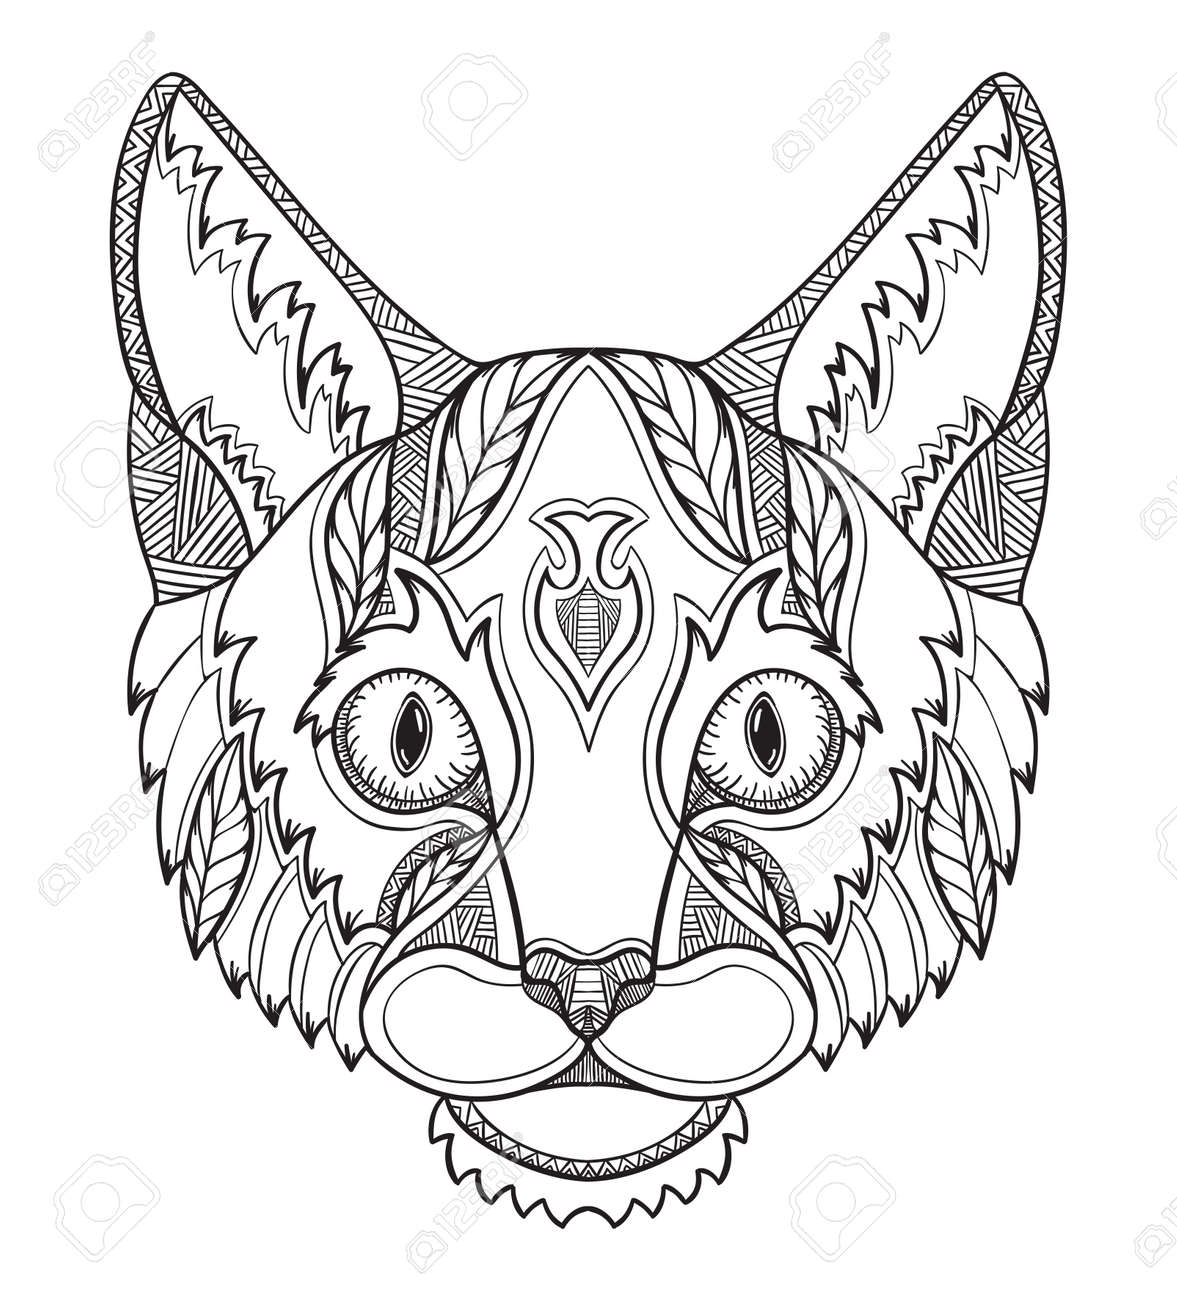 Cat Head Doodle Stylized Vector Illustration Freehand Pencil Royalty Free Cliparts Vectors And Stock Illustration Image 70234426